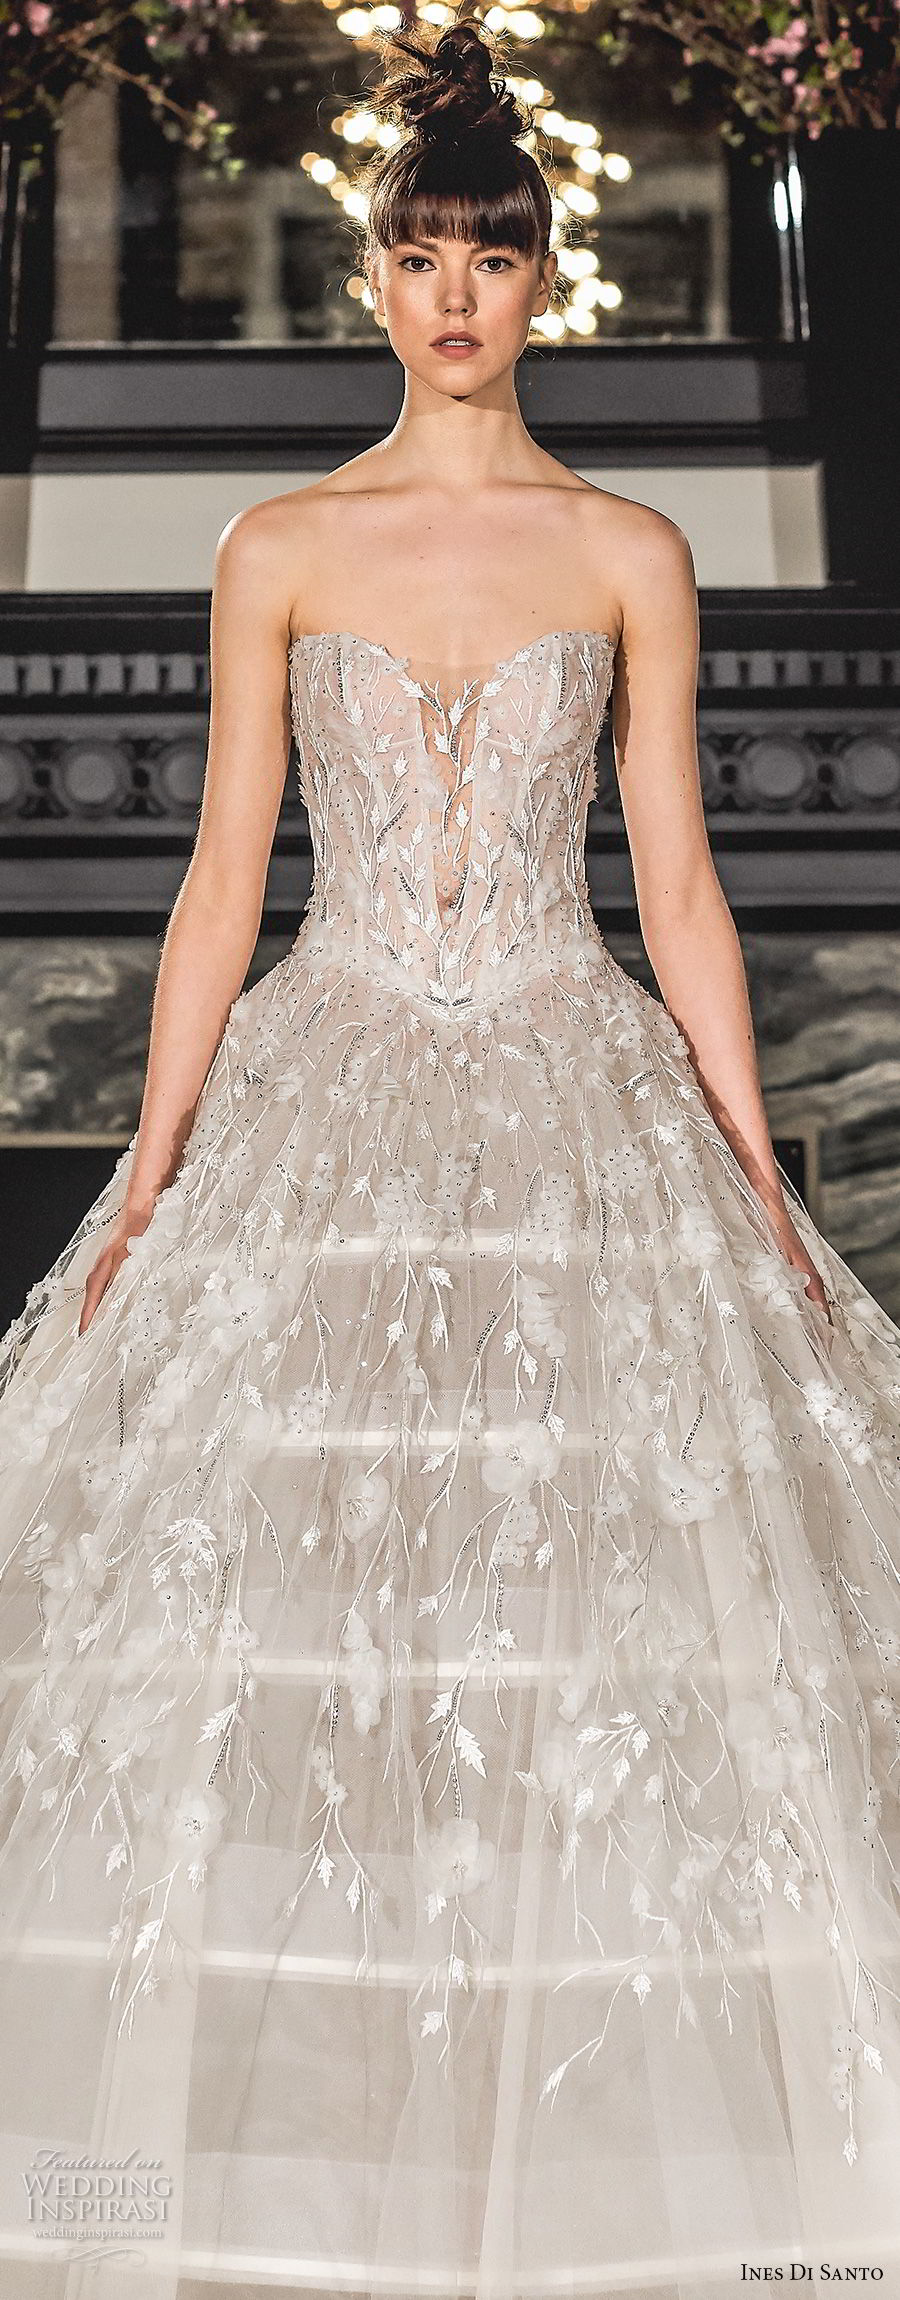 ines di santo spring 2019 bridal strapless sweetheart neckline full embellishment princess romantic ball gown a line wedding dress chapel train (1) zv